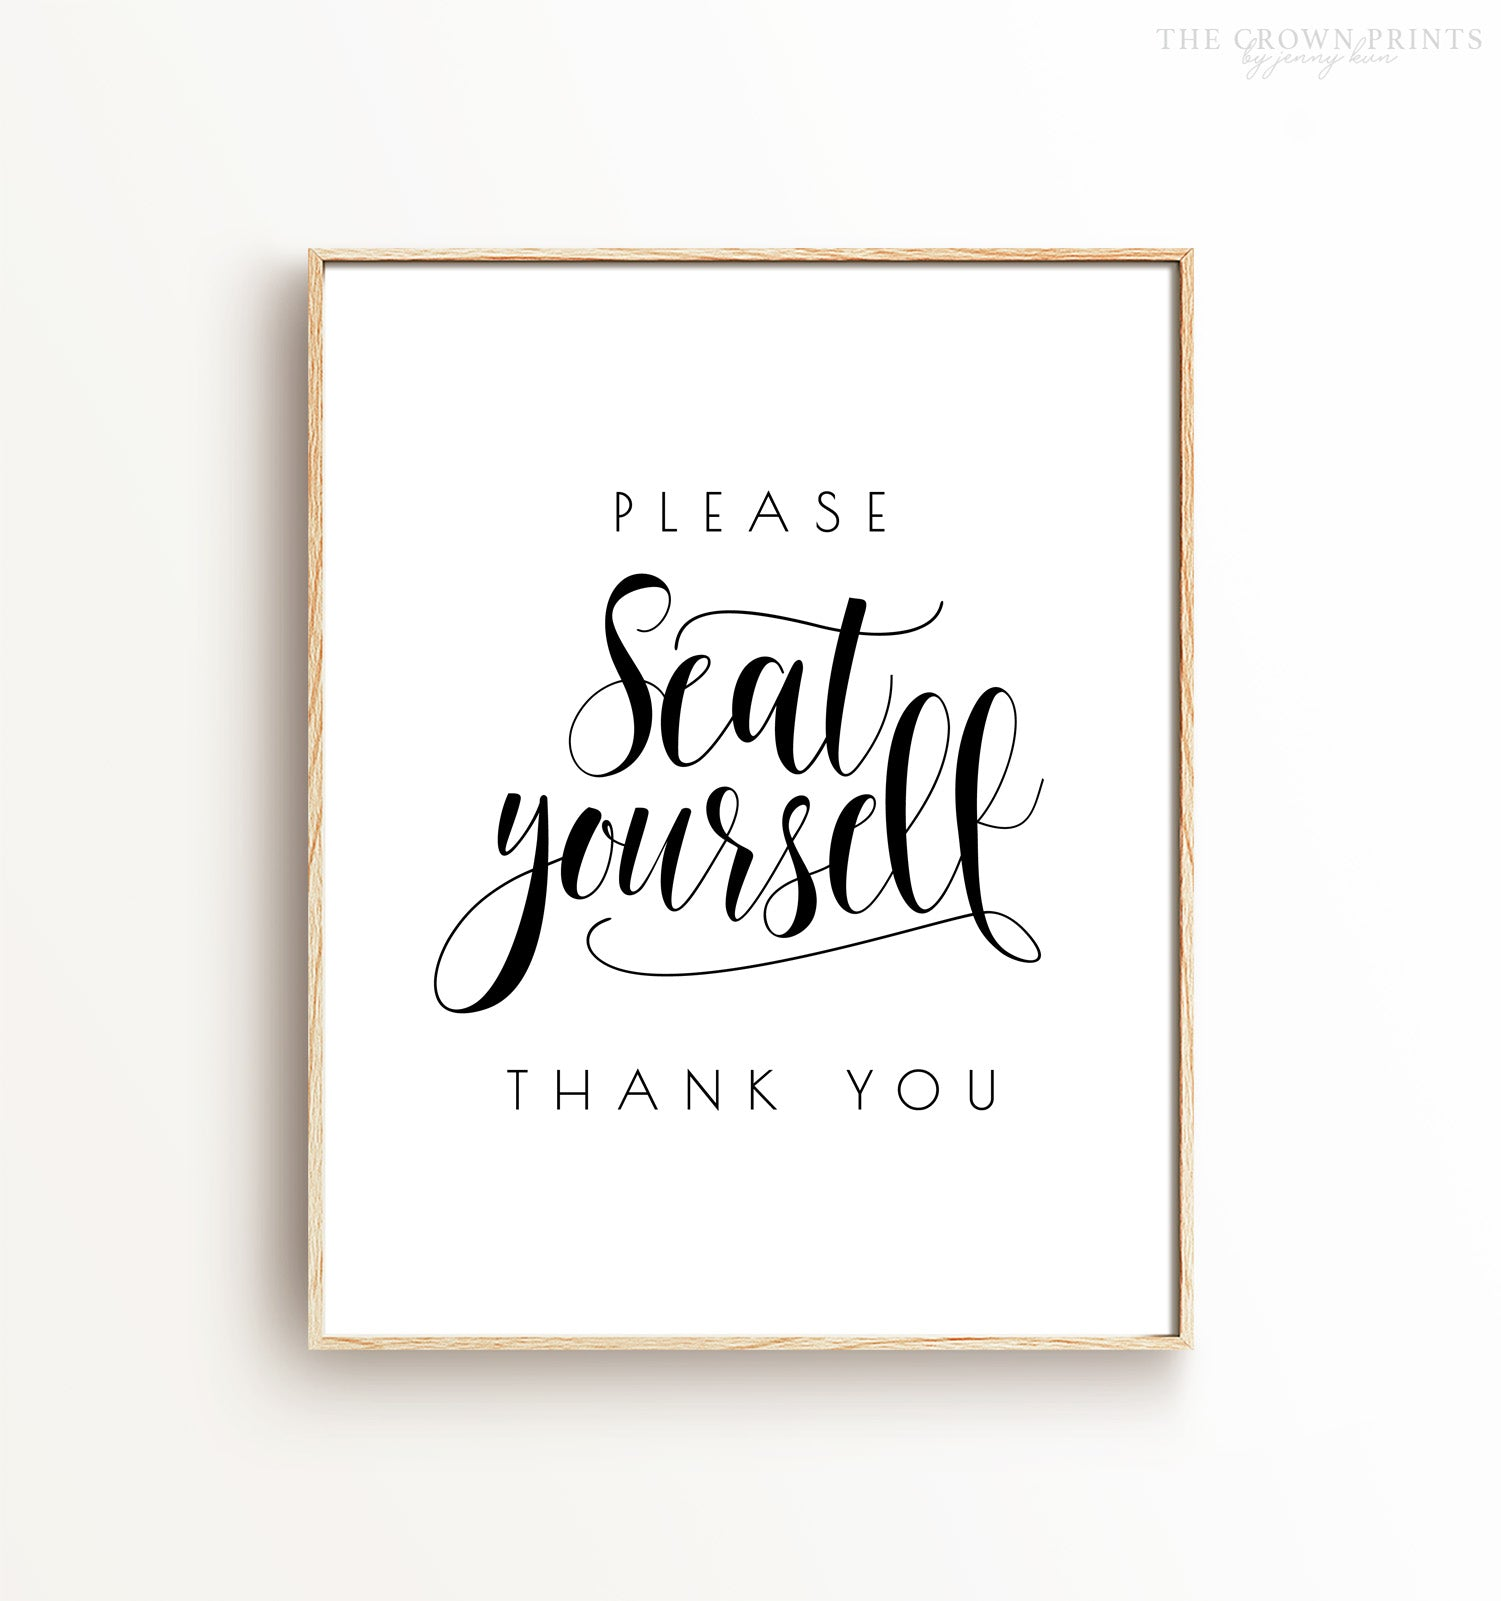 Please Seat Yourself Bathroom Printable Art